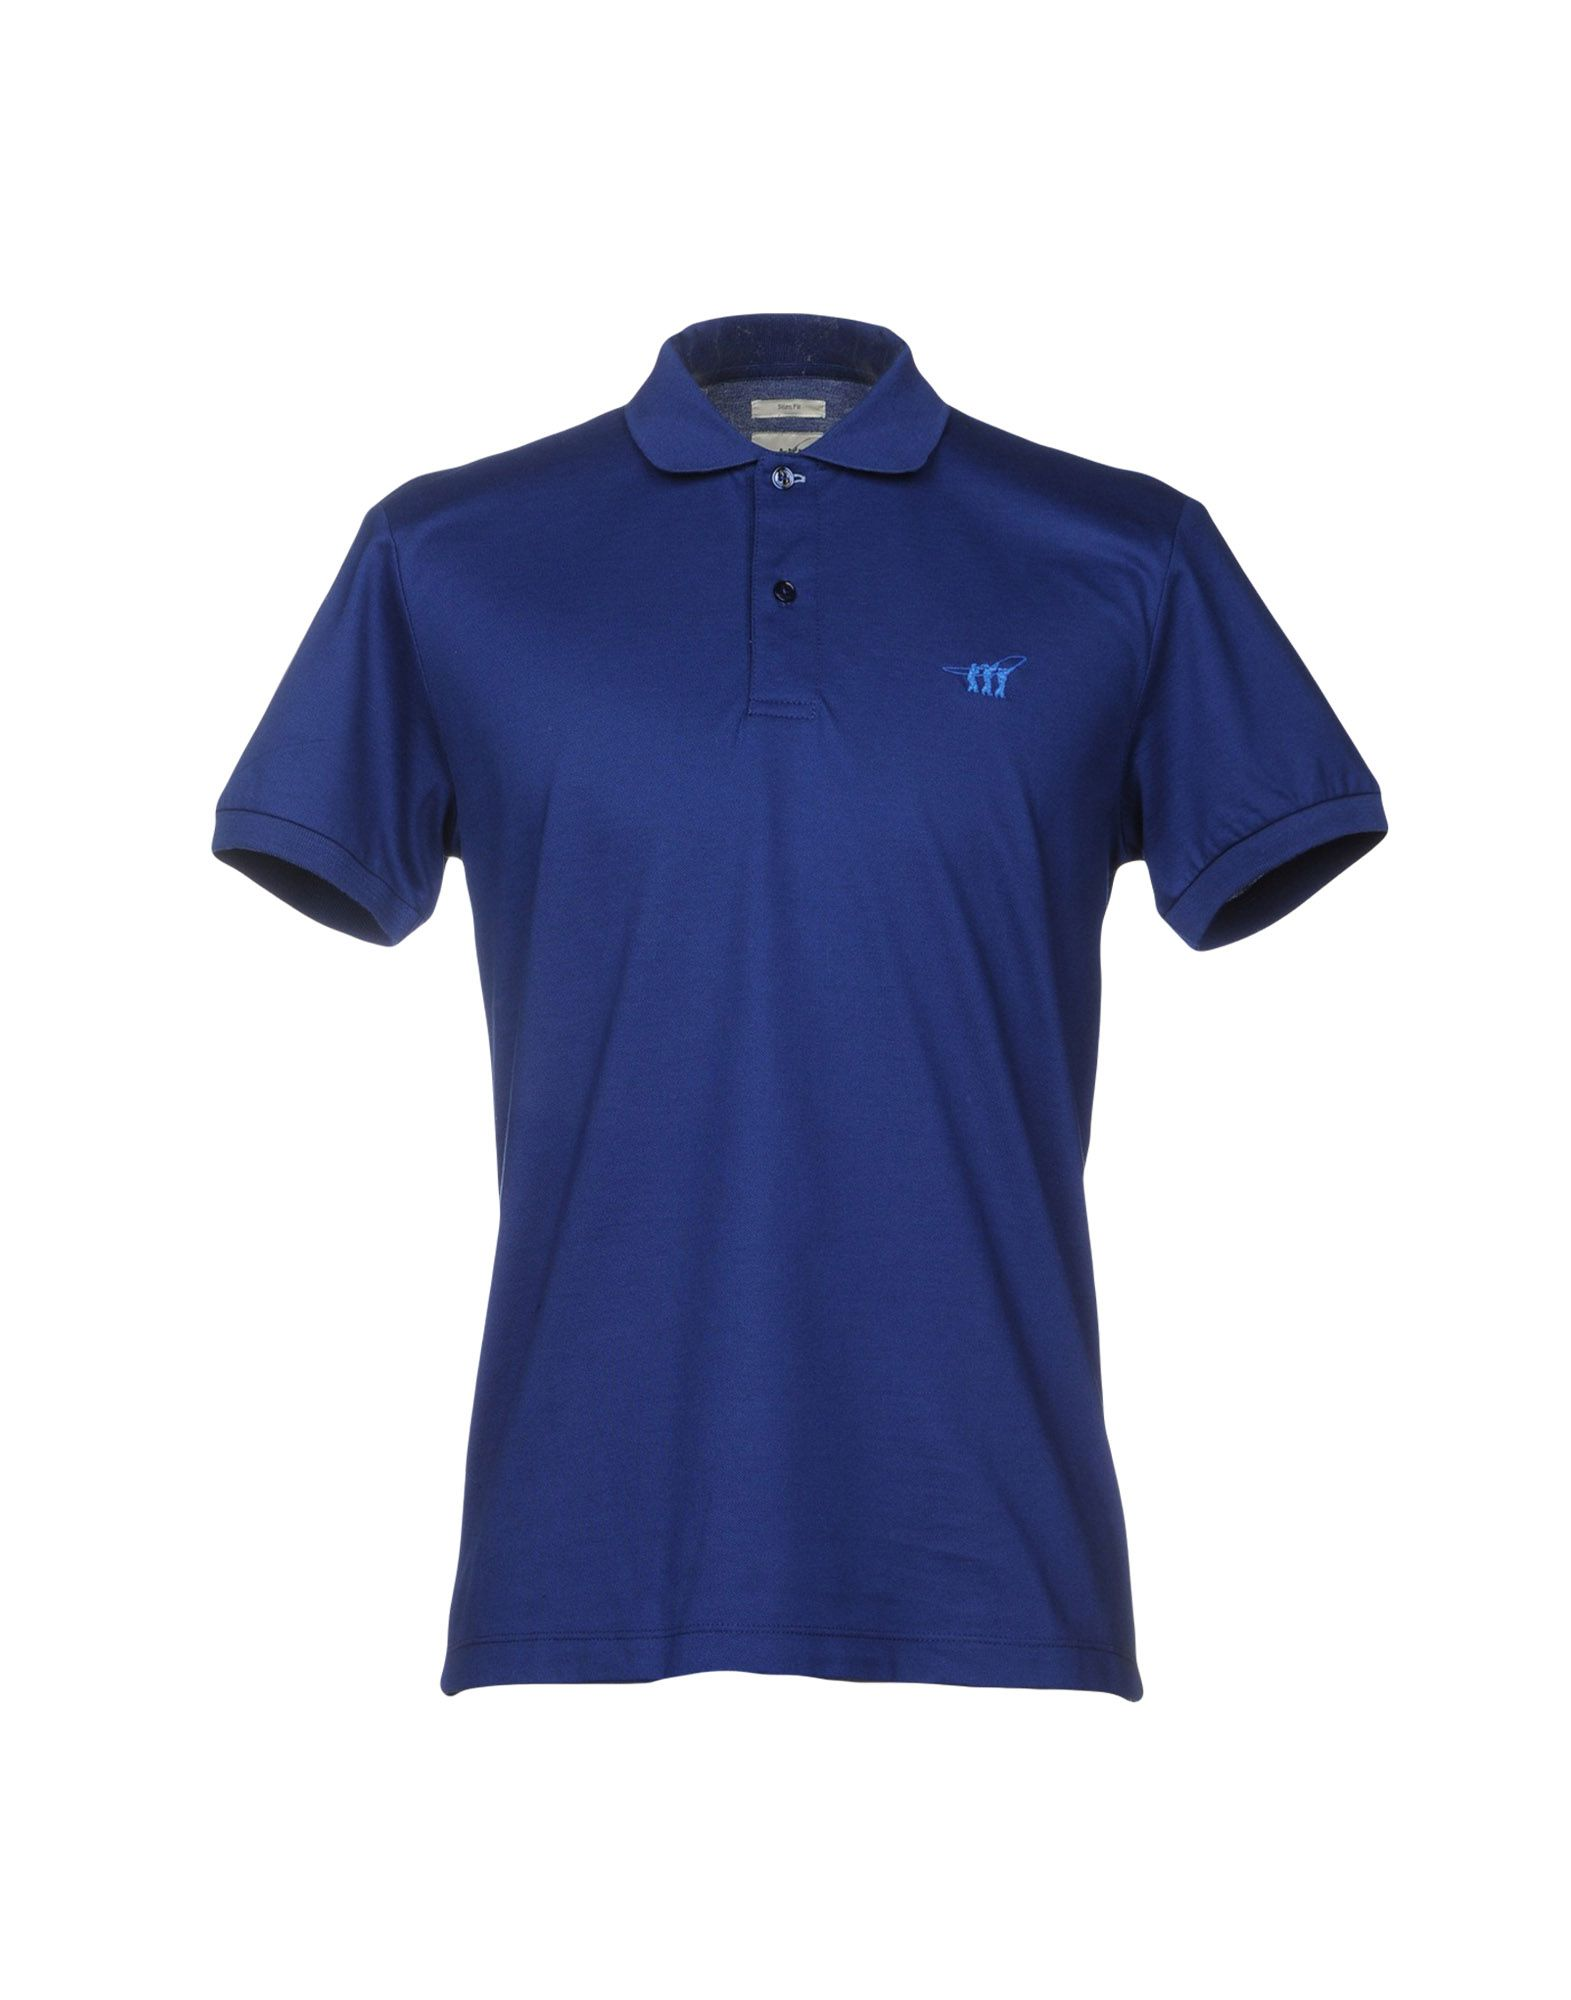 Henry Cotton's Polo Shirts for Men - Henry Cotton's T-Shirts And Tops | YOOX